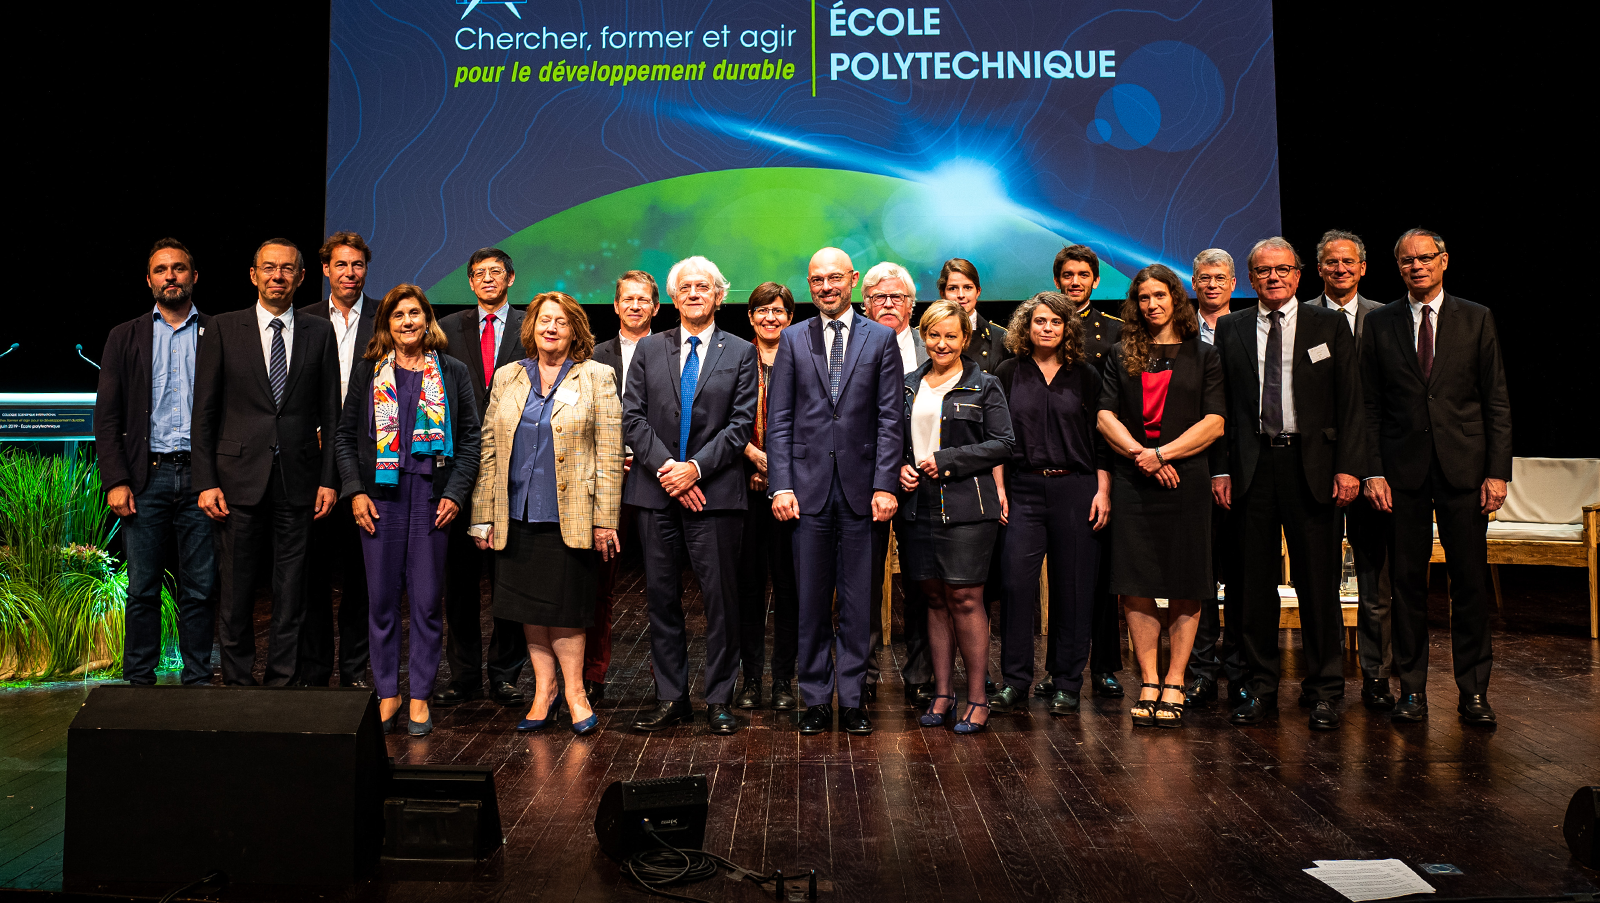 Ecological transition: the central theme of the 225th anniversary of the Ecole polytechnique